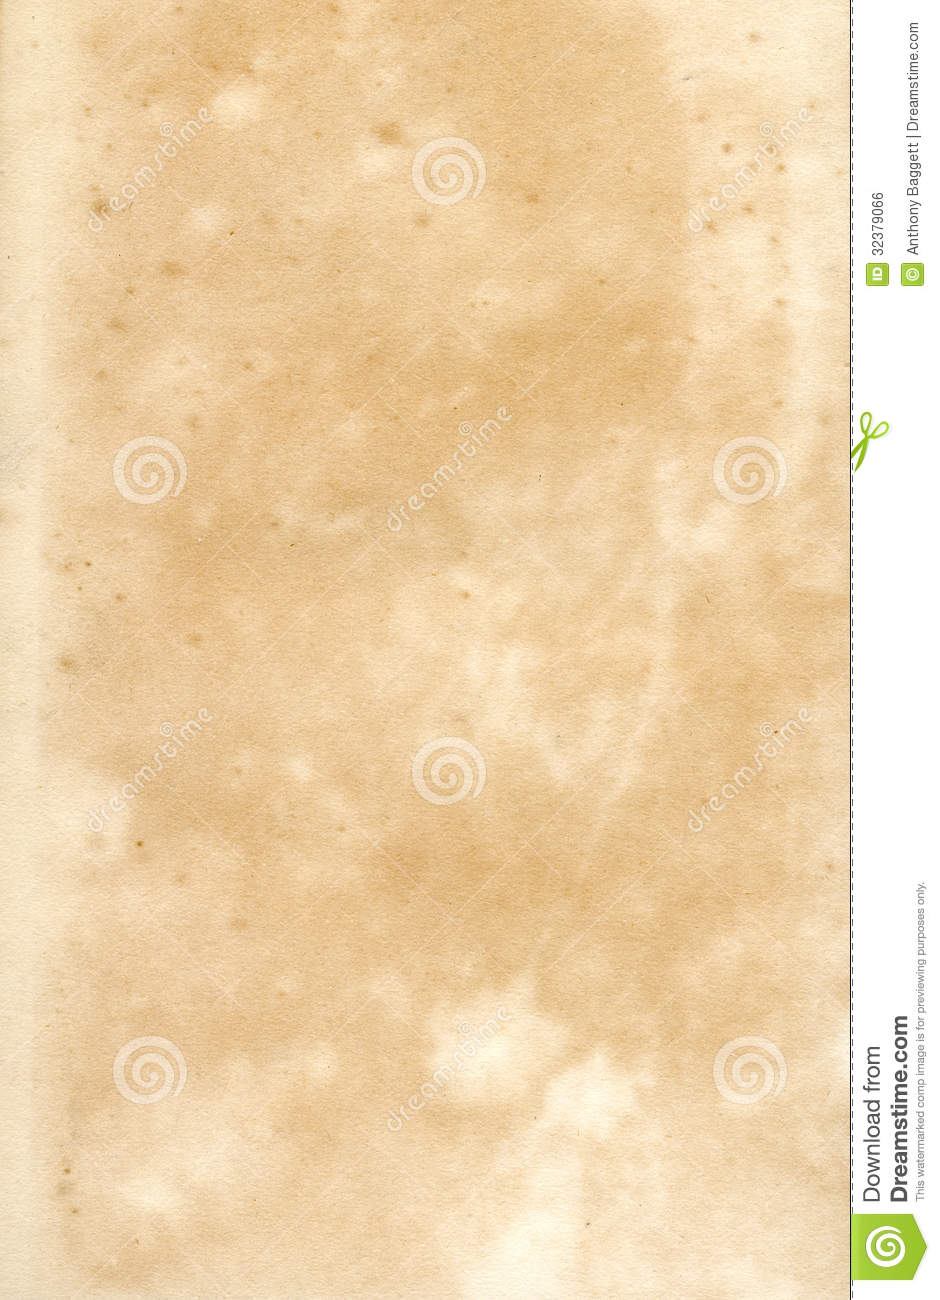 Old 19th Century Paper Stock Photo Image Of Distressed